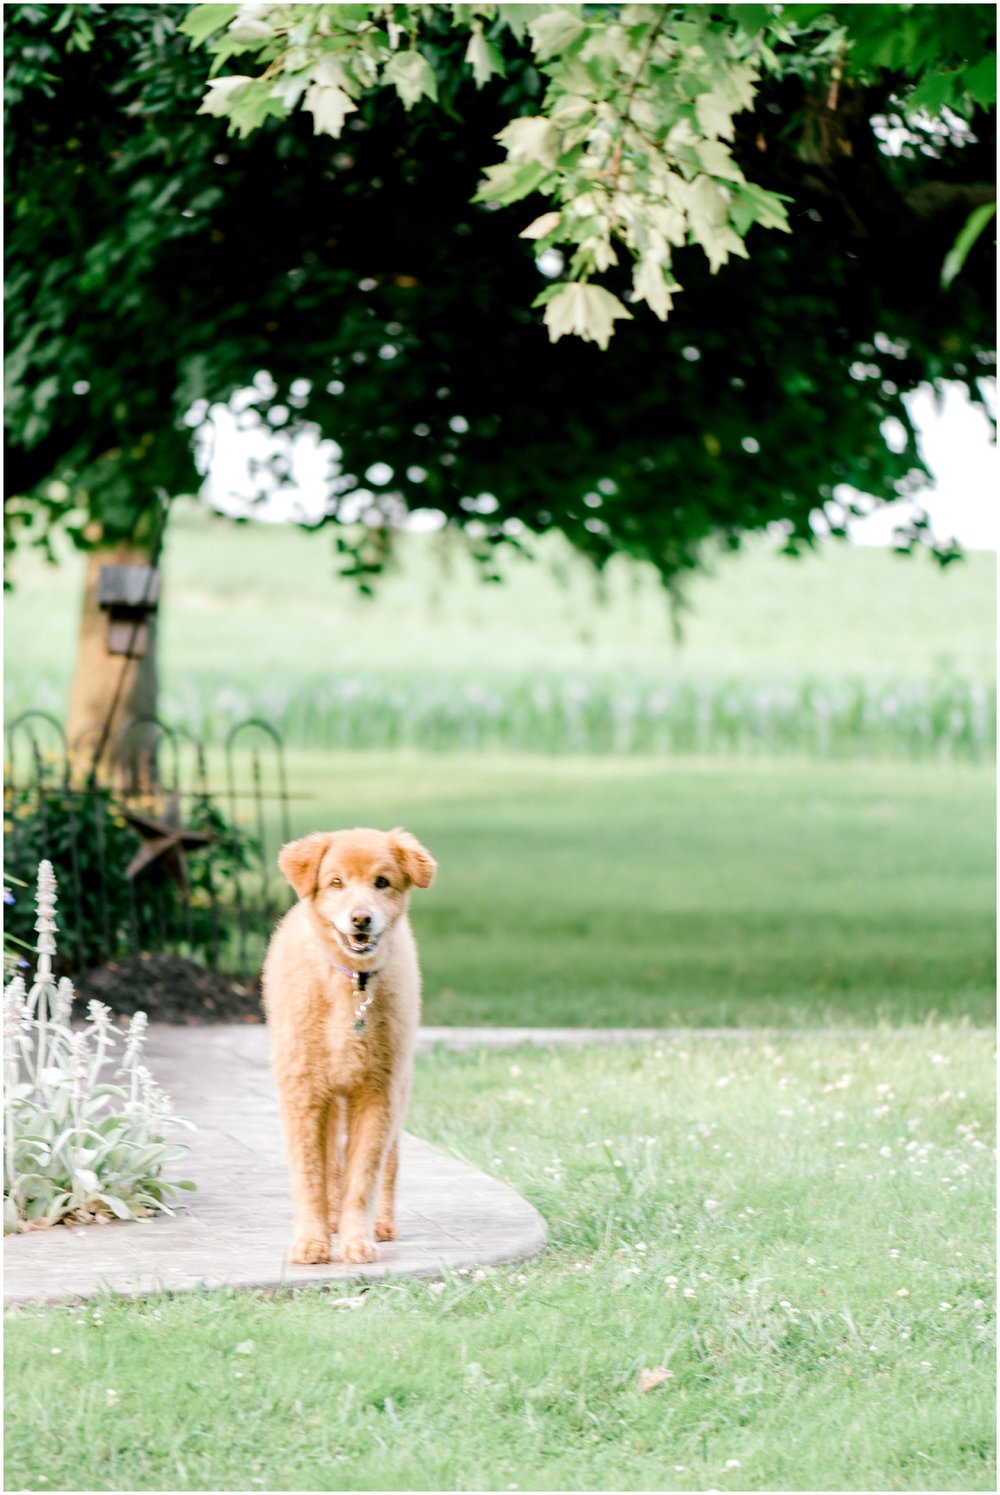 Summer Private Farm Engagement Session - Krista Brackin Photography_0010.jpg